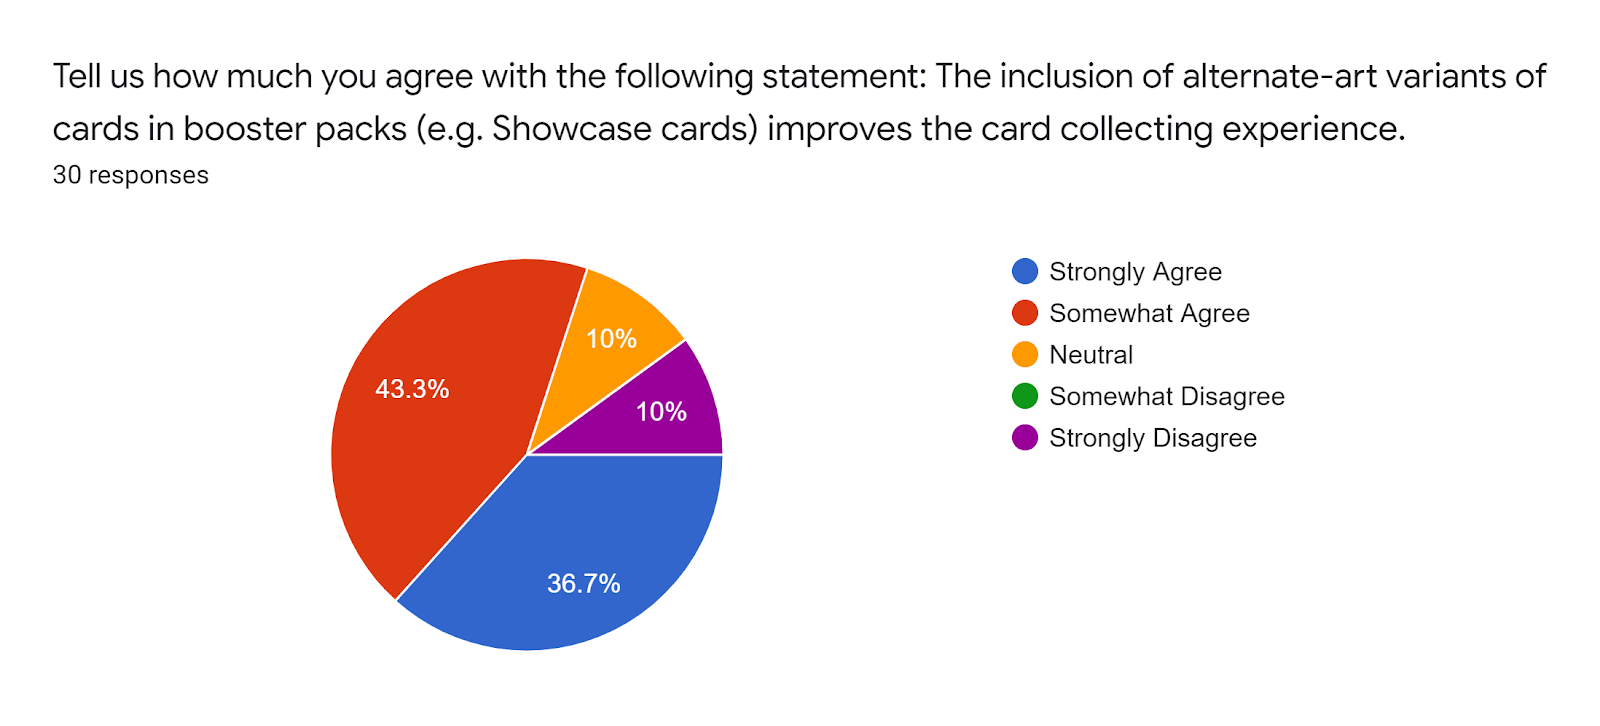 Forms response chart Question title Tell us how much you agree with the following statement The inclusion of alternate-art variants of cards in booster packs eg Showcase cards improves the card collecting experience Number of responses 30 responses